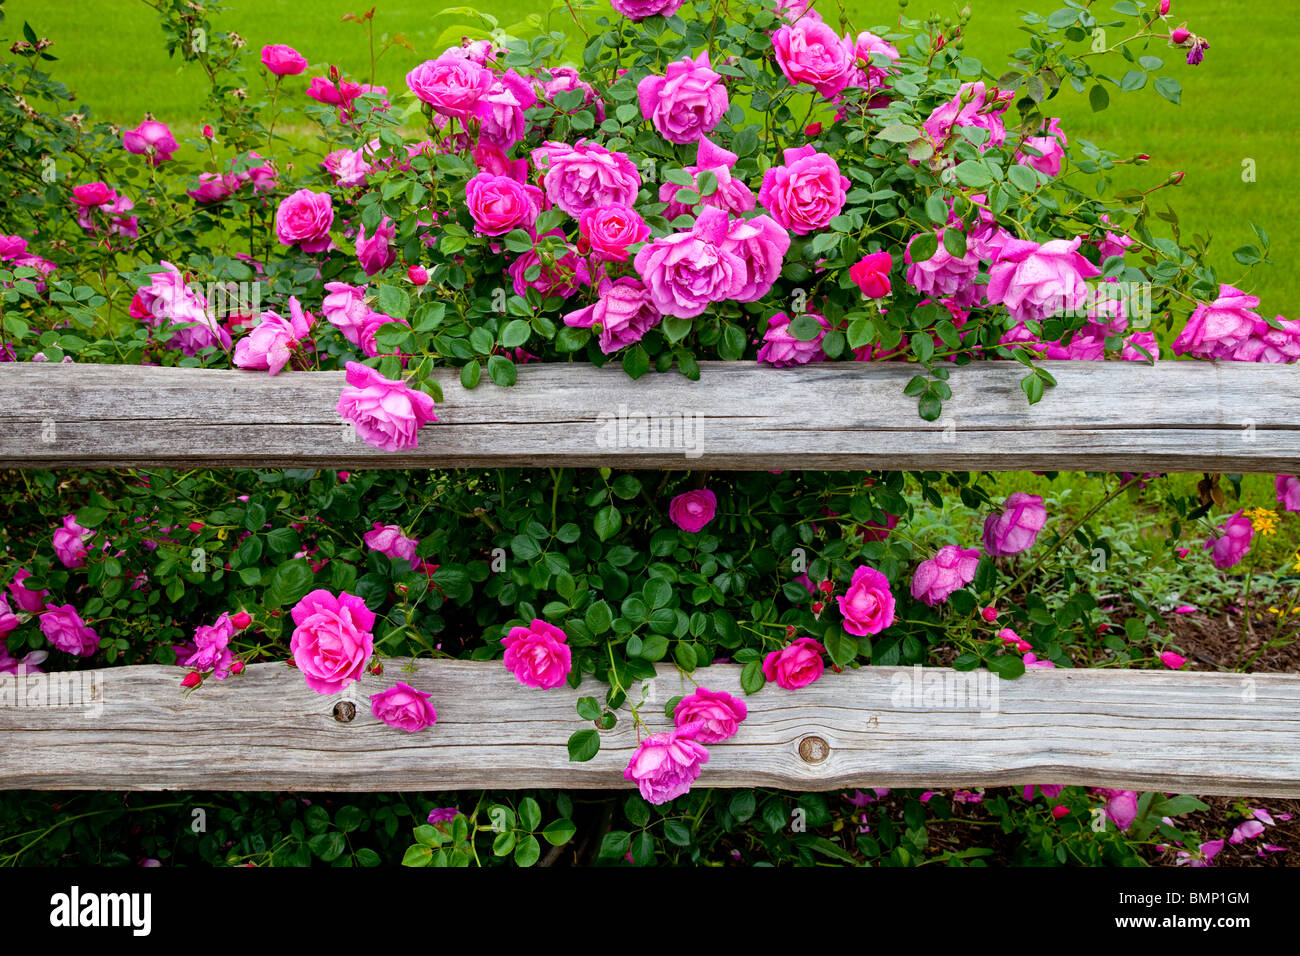 Deep pink roses and a rustic old fence at the Junction House restaurant in Kingsland, Texas, USA. - Stock Image